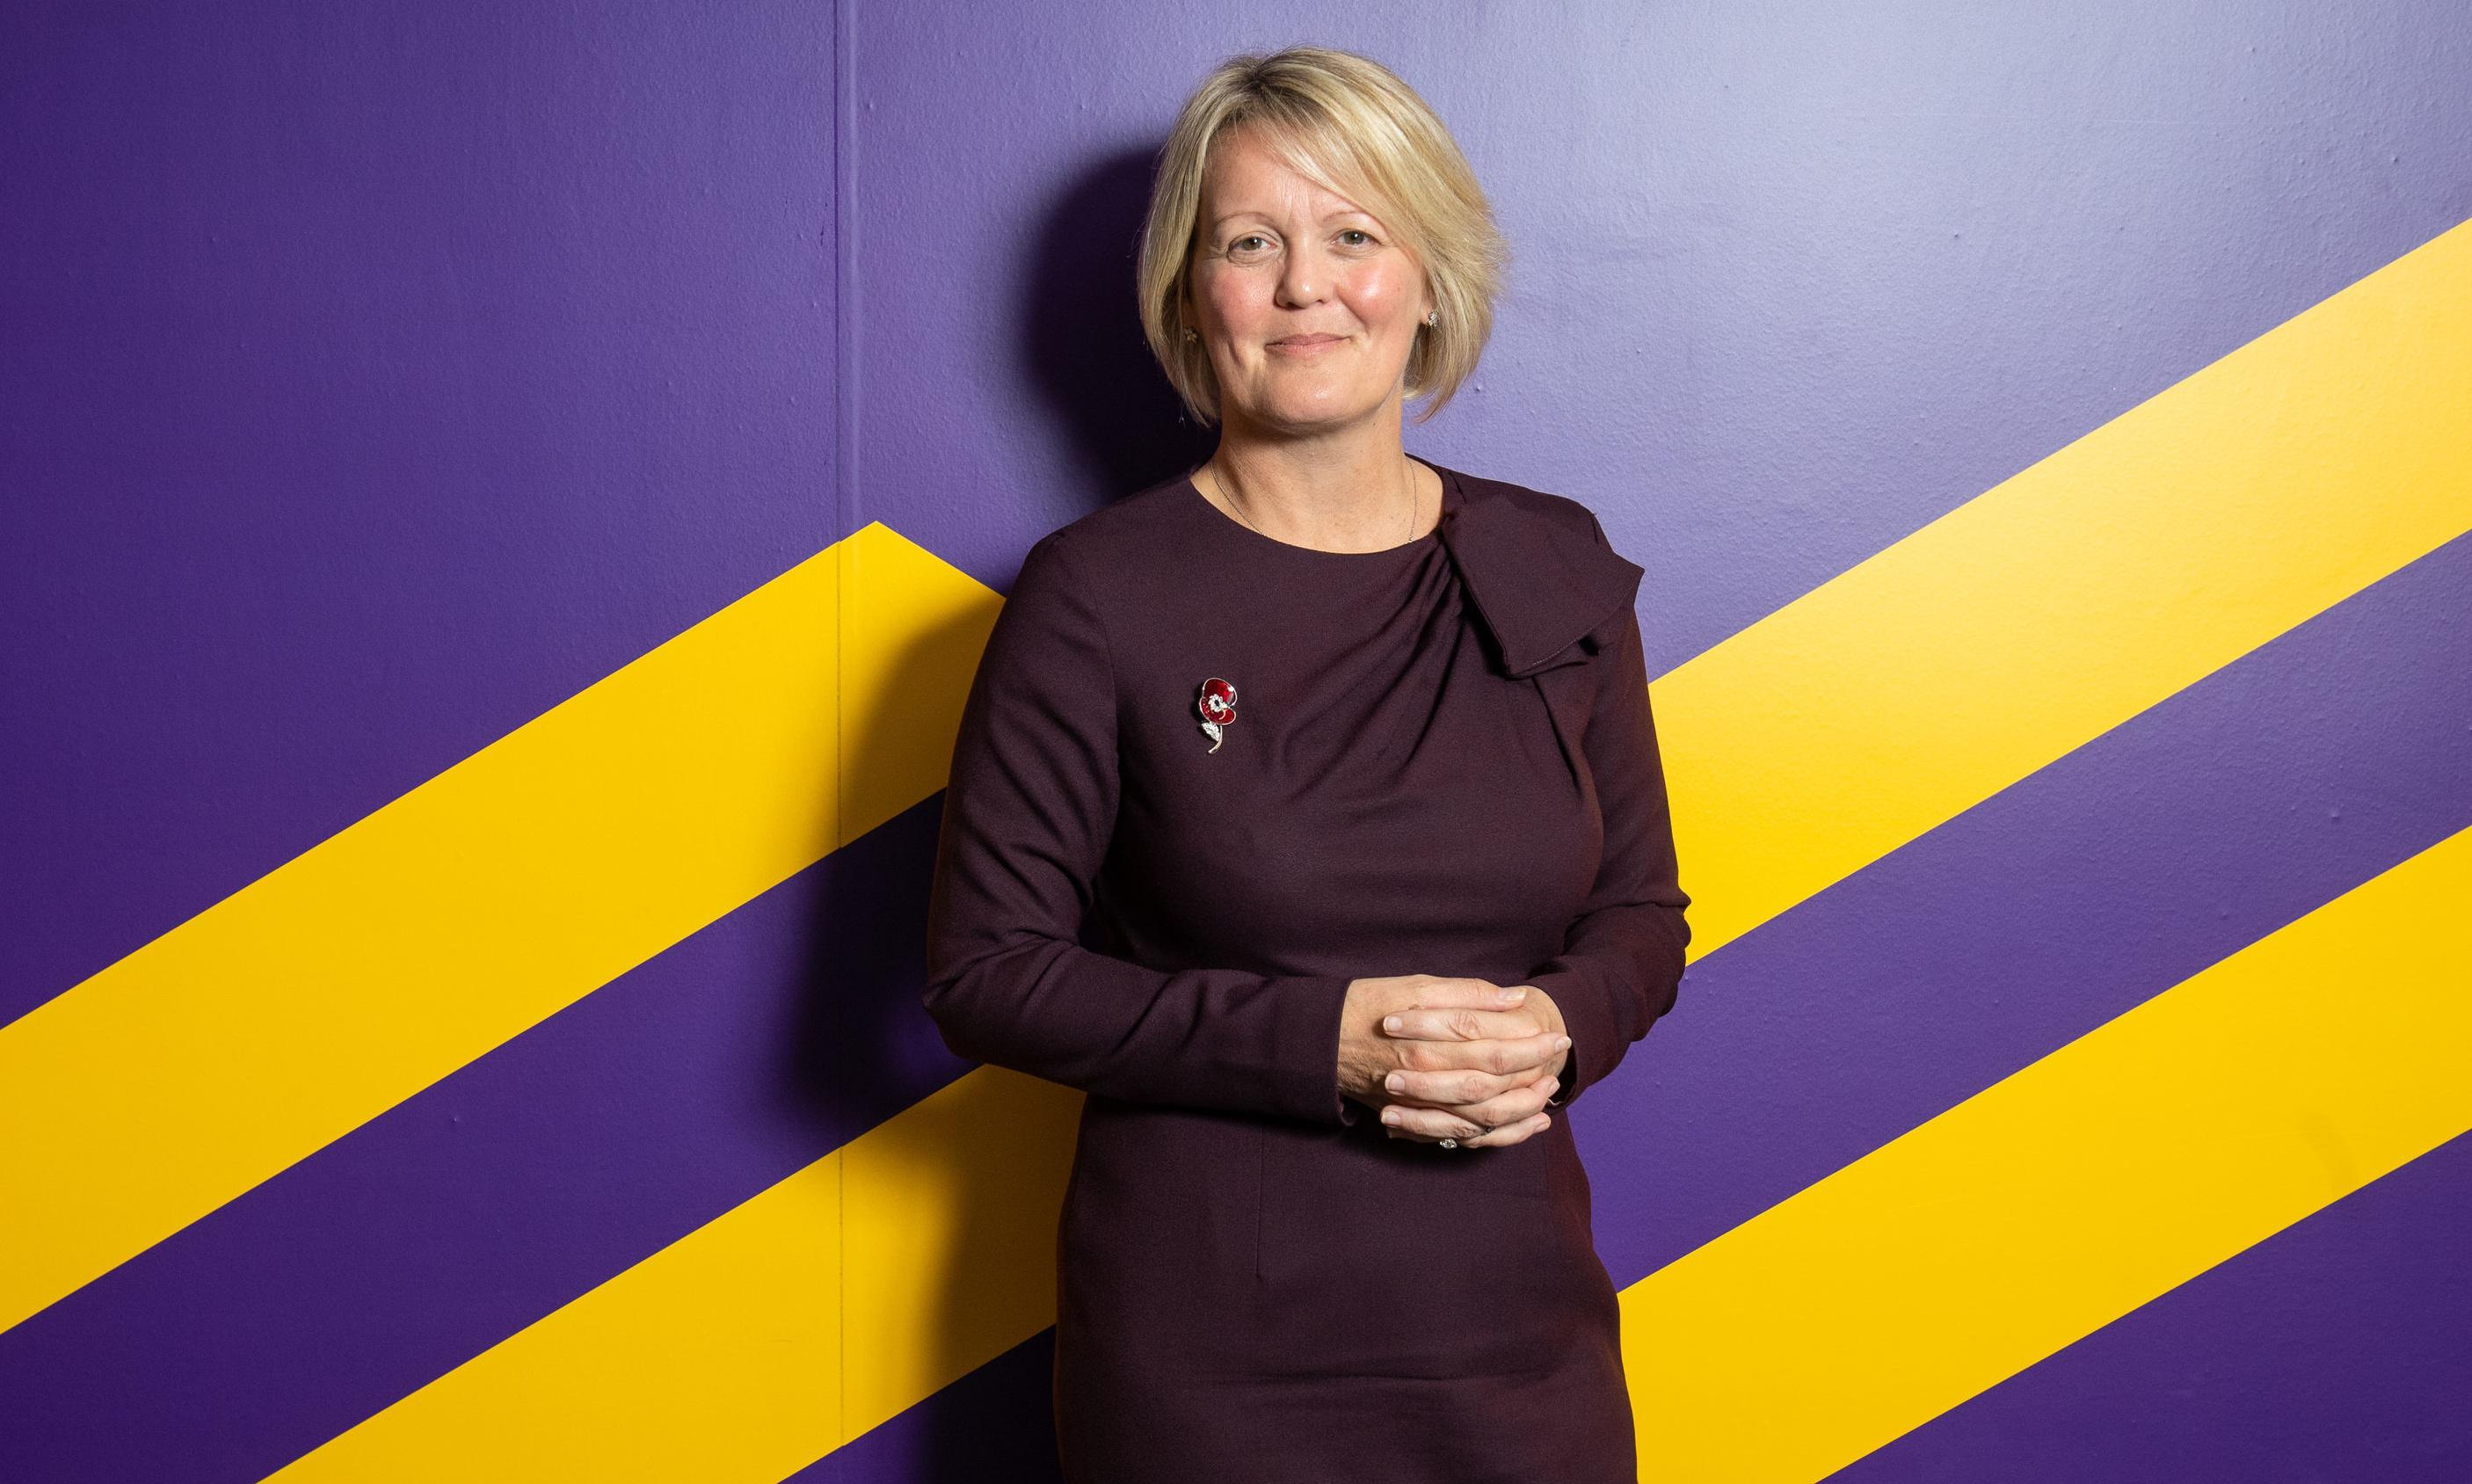 How far will Alison Rose go to take RBS into the 21st century?